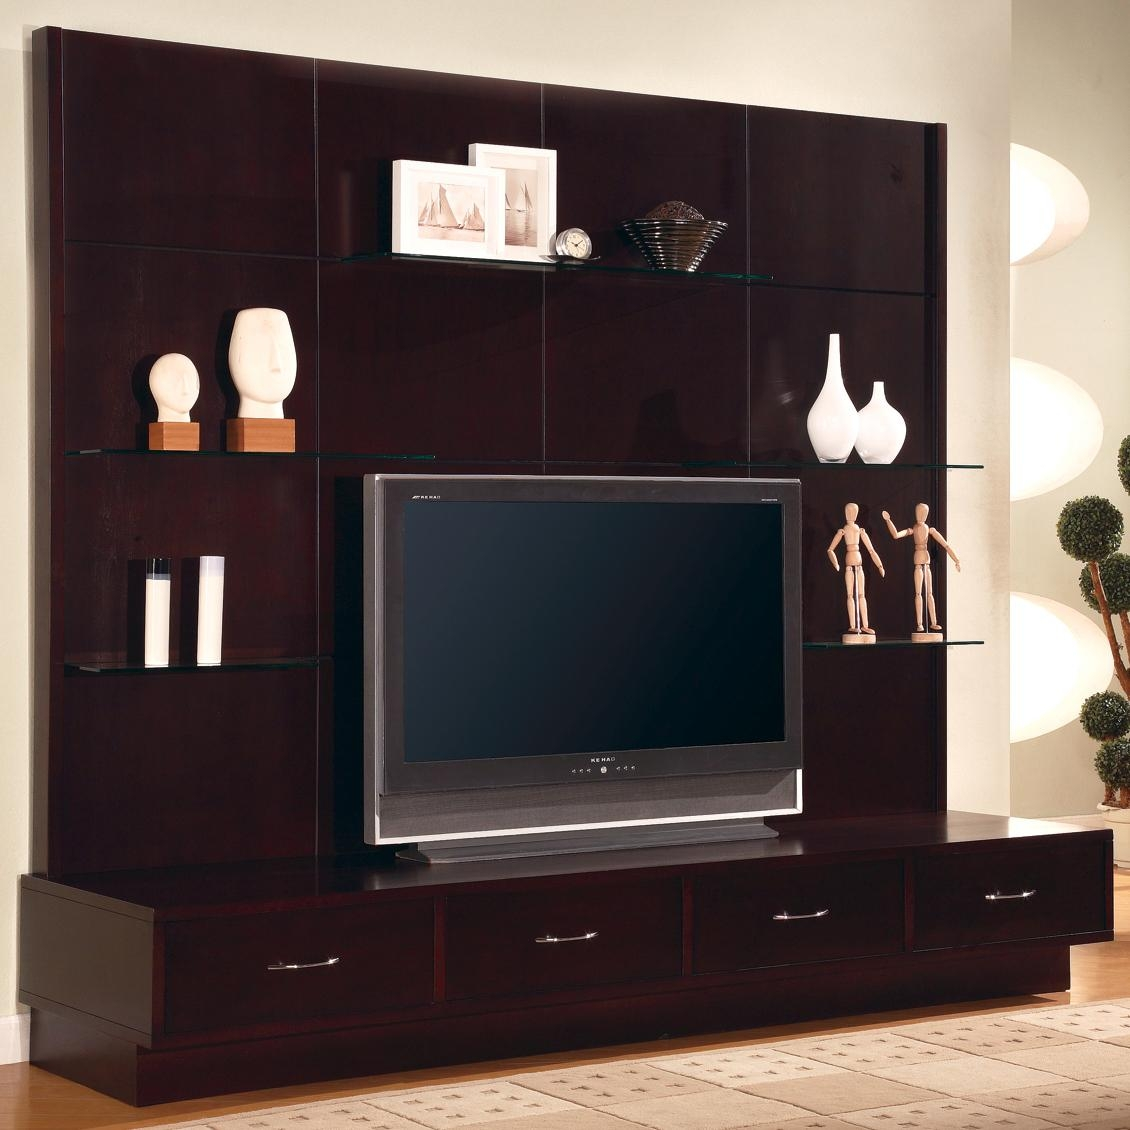 Images For Tv Wall Units Emiliesbeautycom